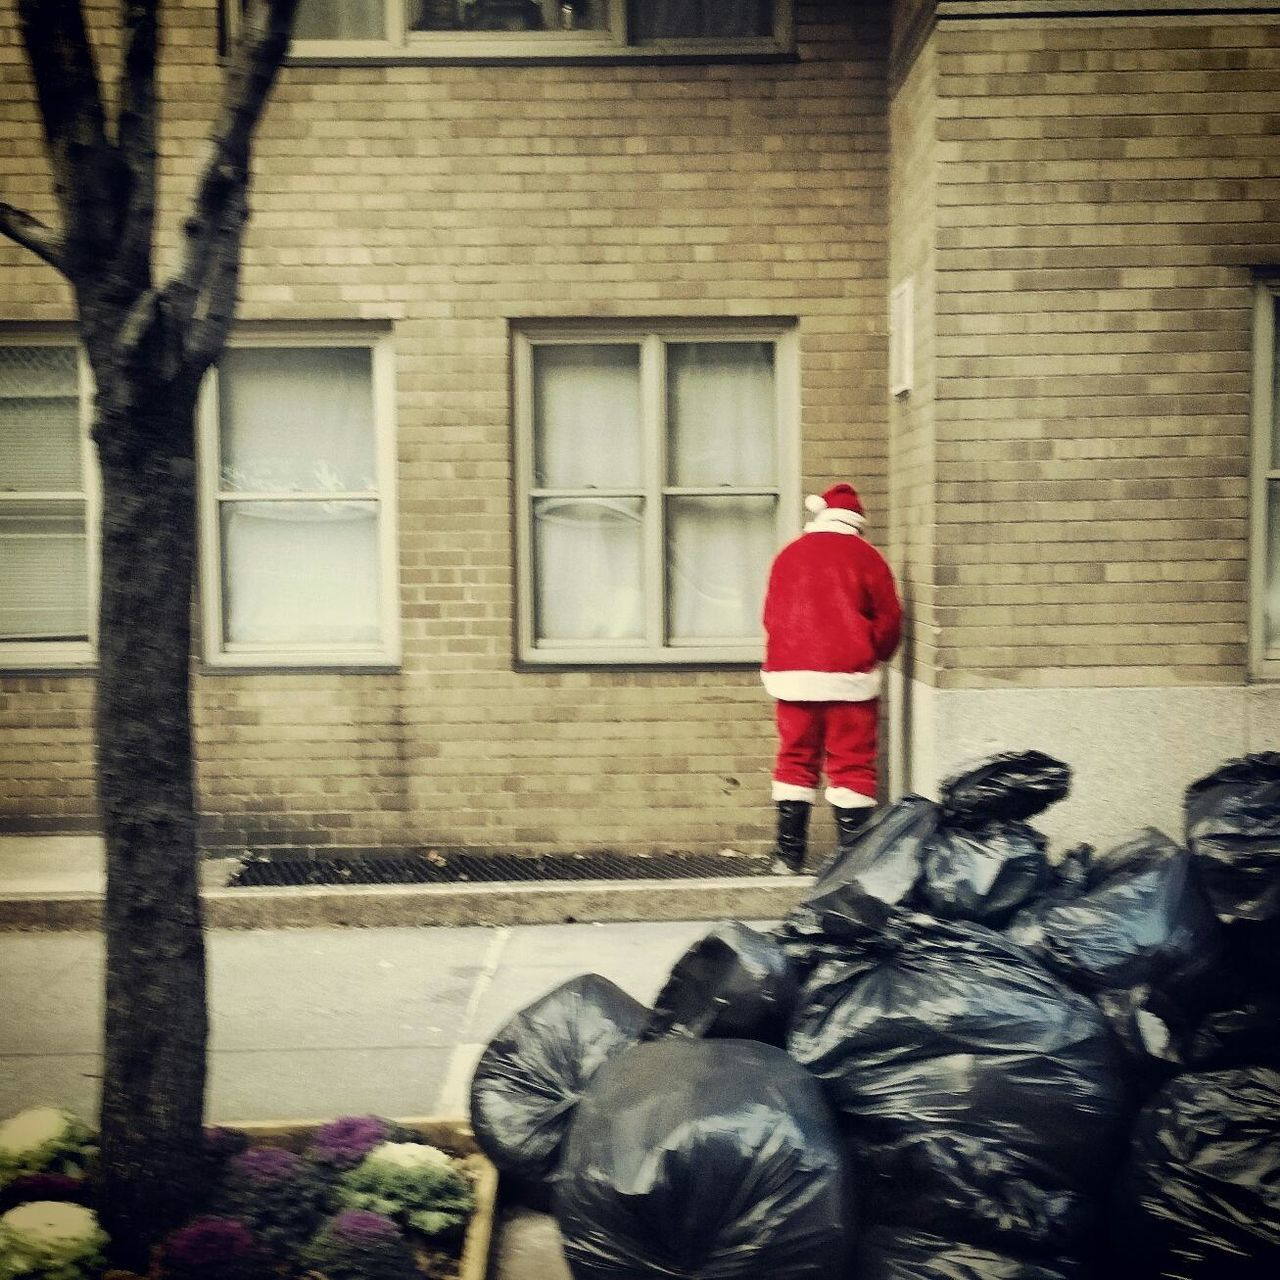 First Eyeem Photo Santa Claus Christmas Santacon NYC MerryChristmas Merry Xmas! EyeEm Best Shots New York City Manhattan NYC Photography NYC NYC LIFE ♥ Naughty Garbage Landscapes With WhiteWall The Culture Of The Holidays 12daysofeyeem 12 Days Of Eyeem: These Are My Friends